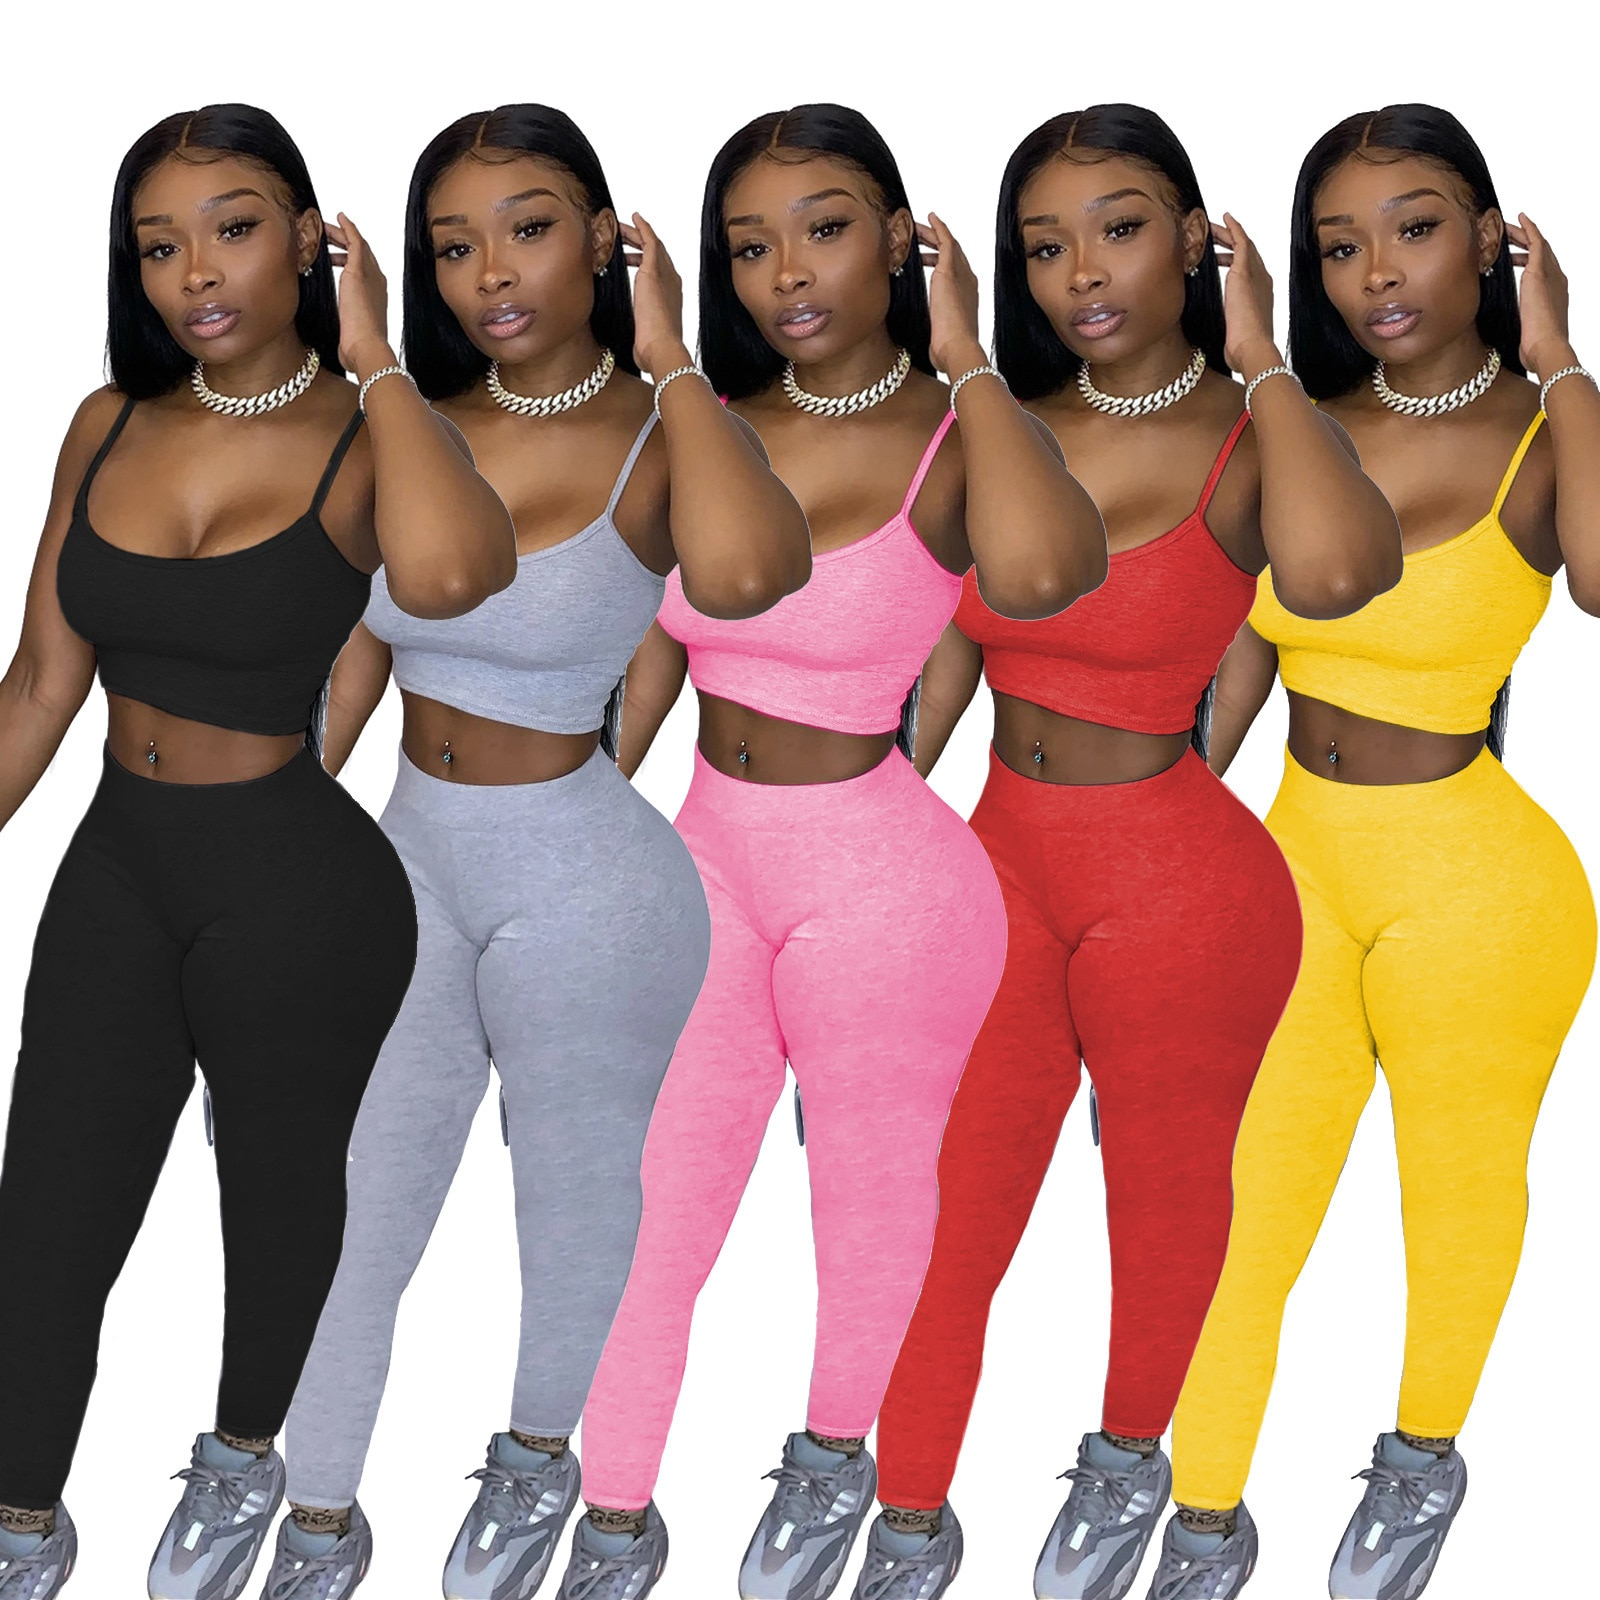 2021 European and American hot sale new women's casual sports solid color suspender trousers two-piece suit